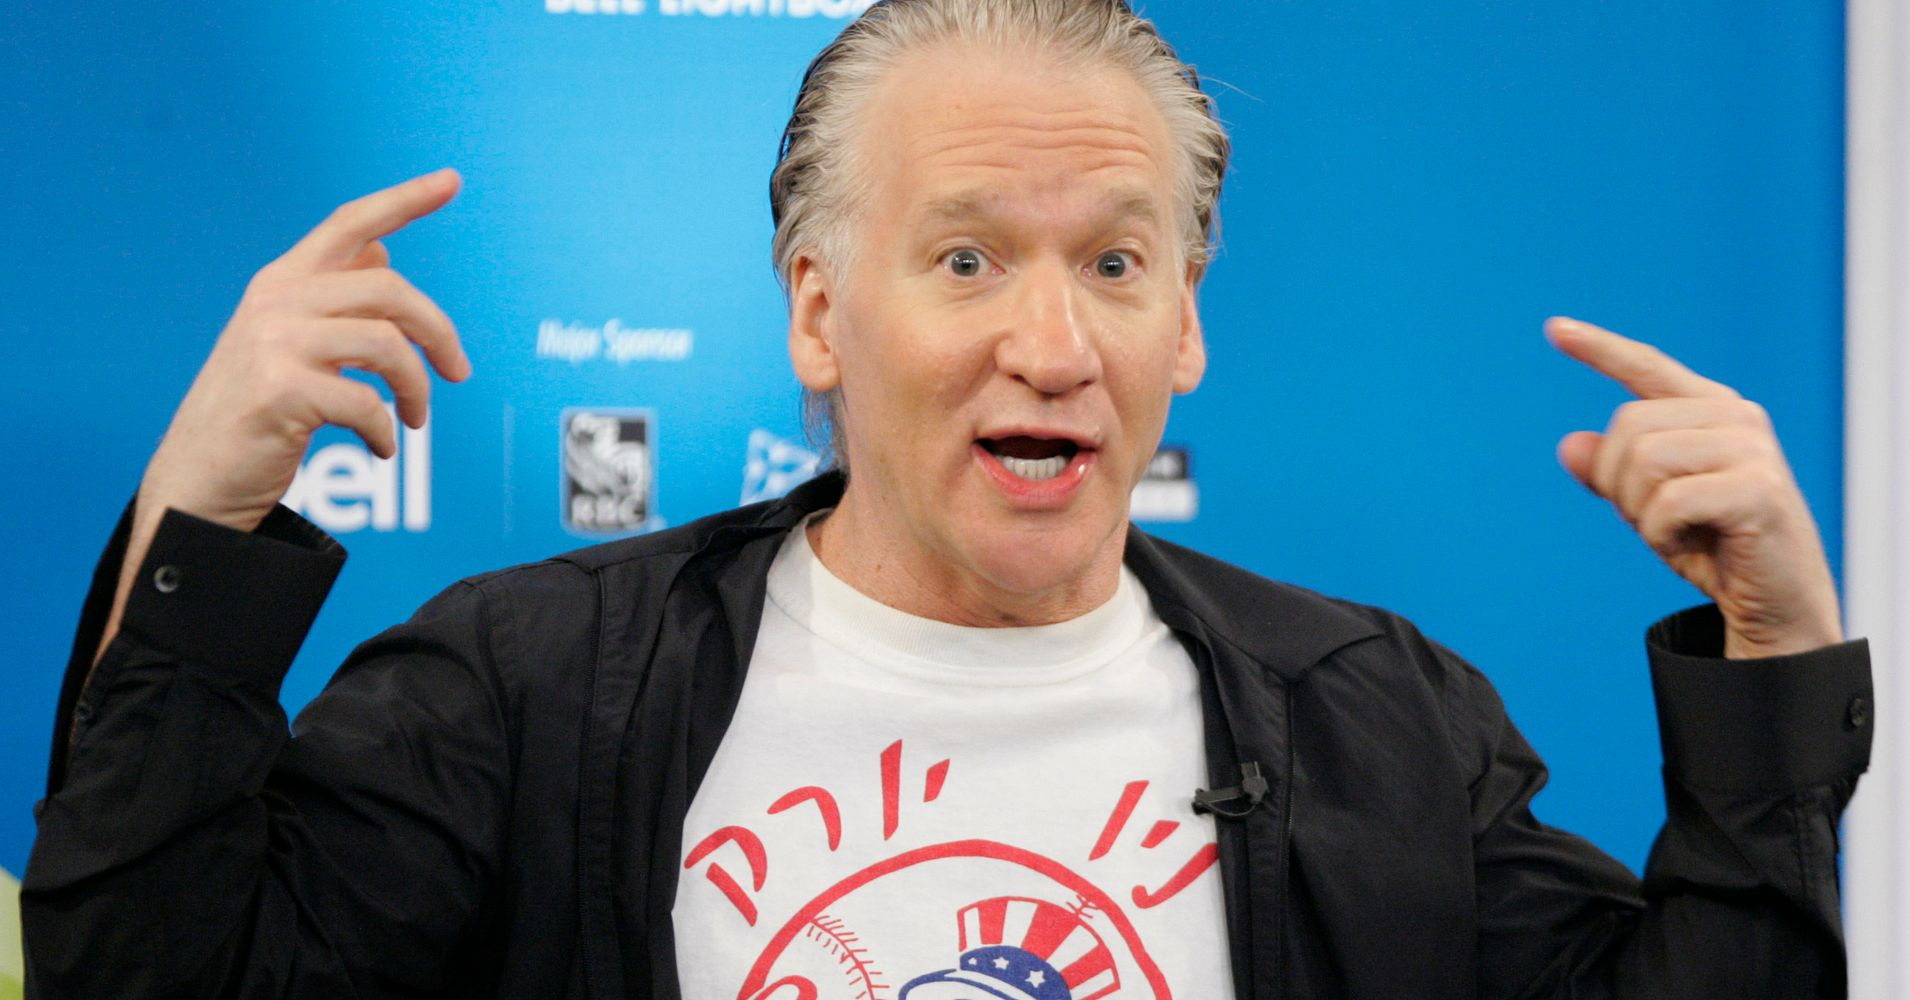 Bill Maher Jokes About N. Korea And Asian Nail Salon Workers ...